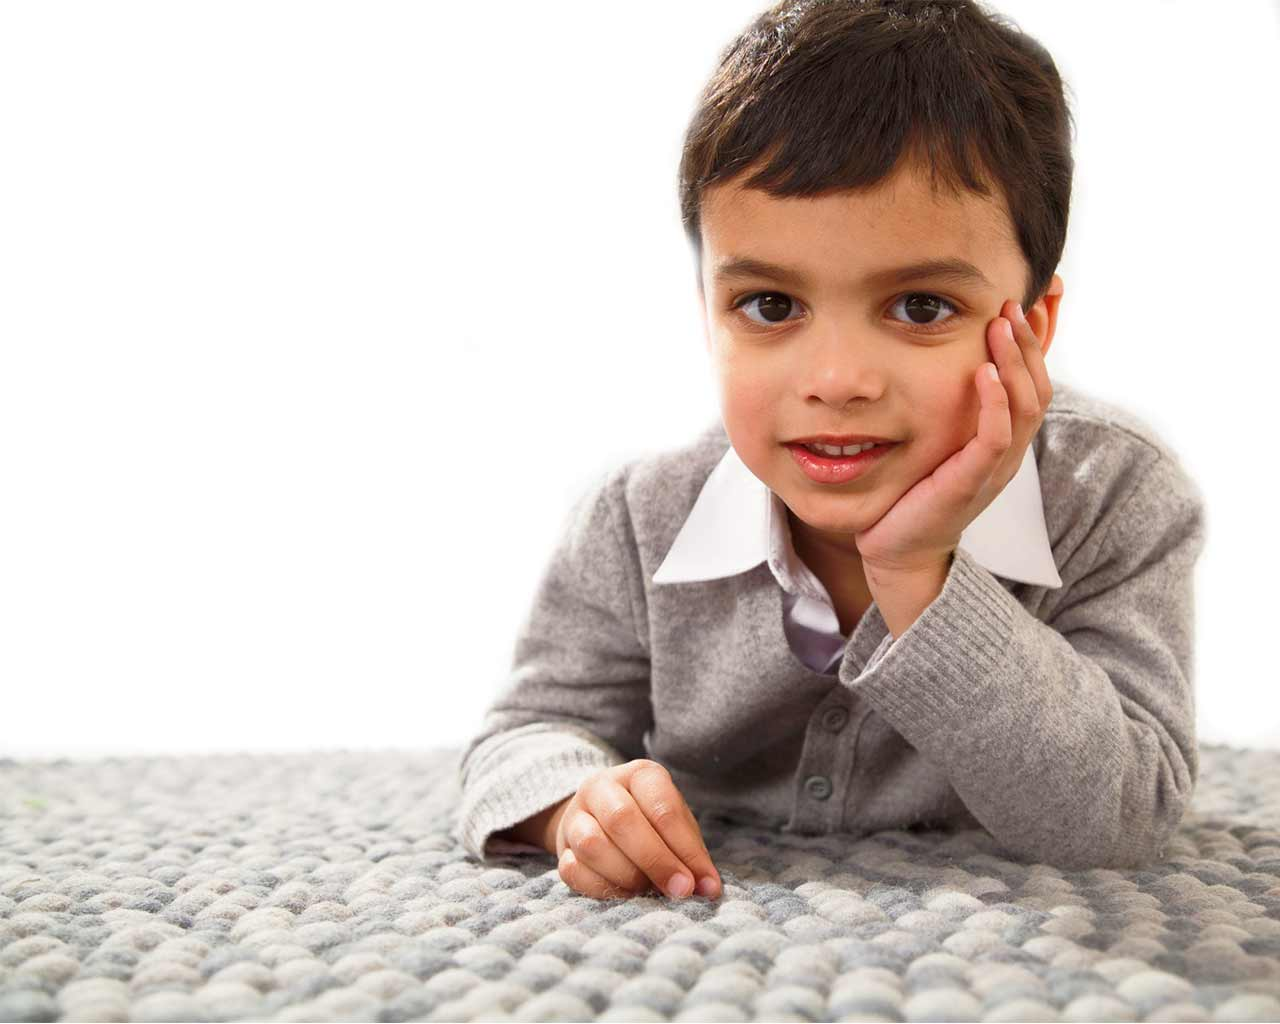 model kid carpet sit on rug